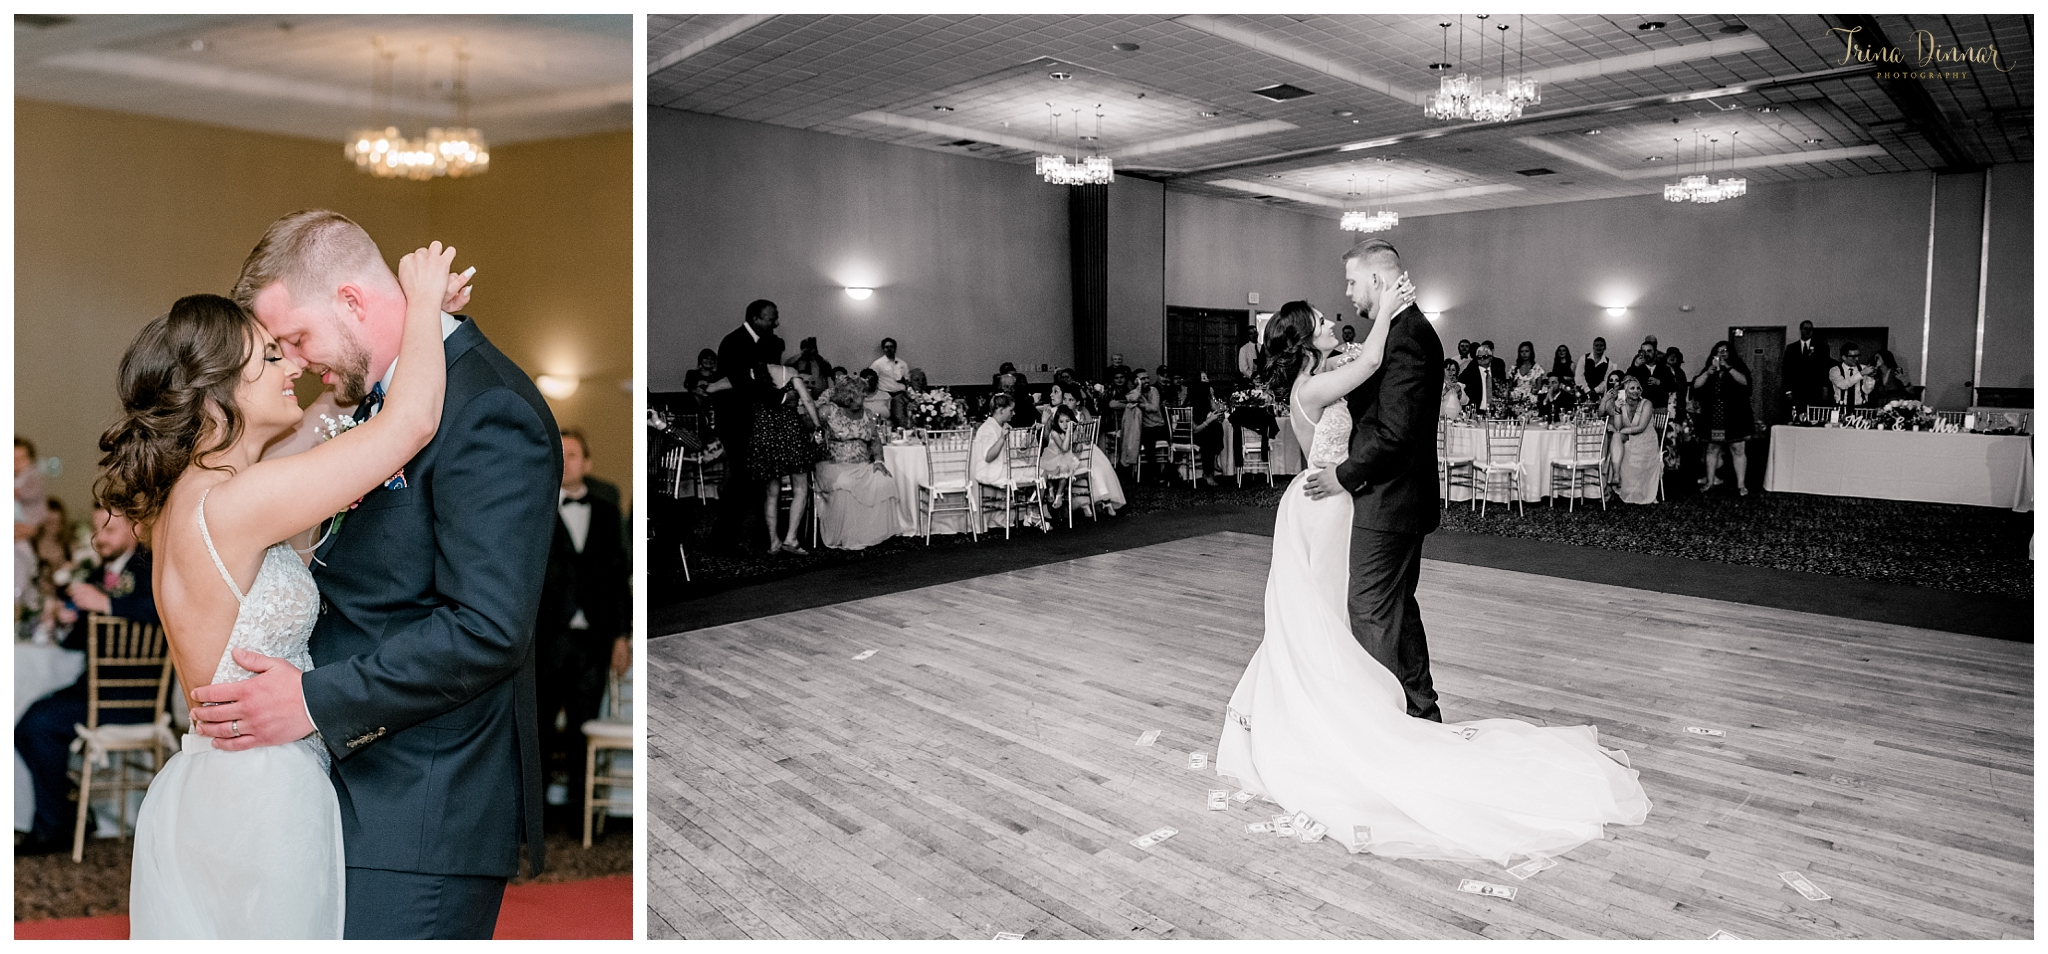 Bride and Groom's first dance in the Grand Ballroom at the Grand Summit Hotel